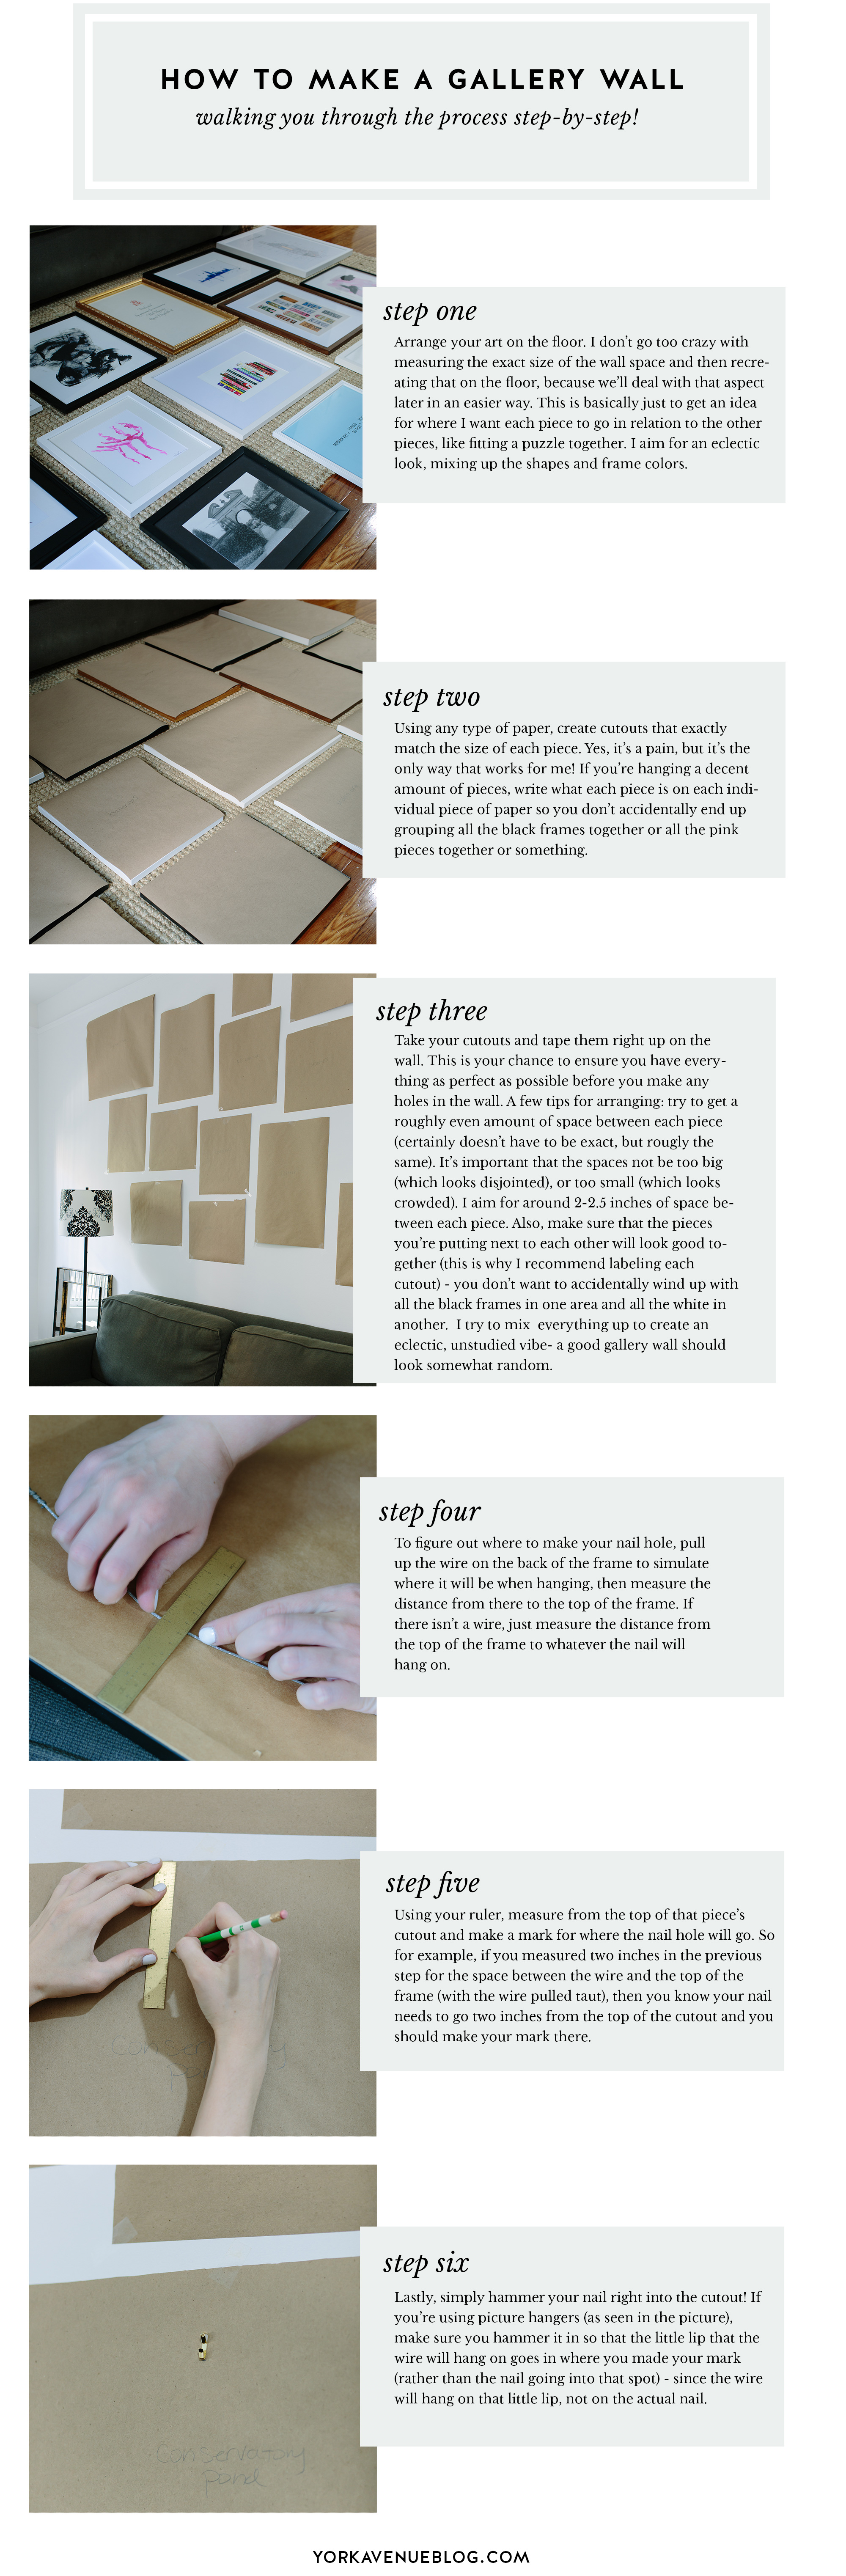 My New Gallery Wall and How I Made It | York Avenue